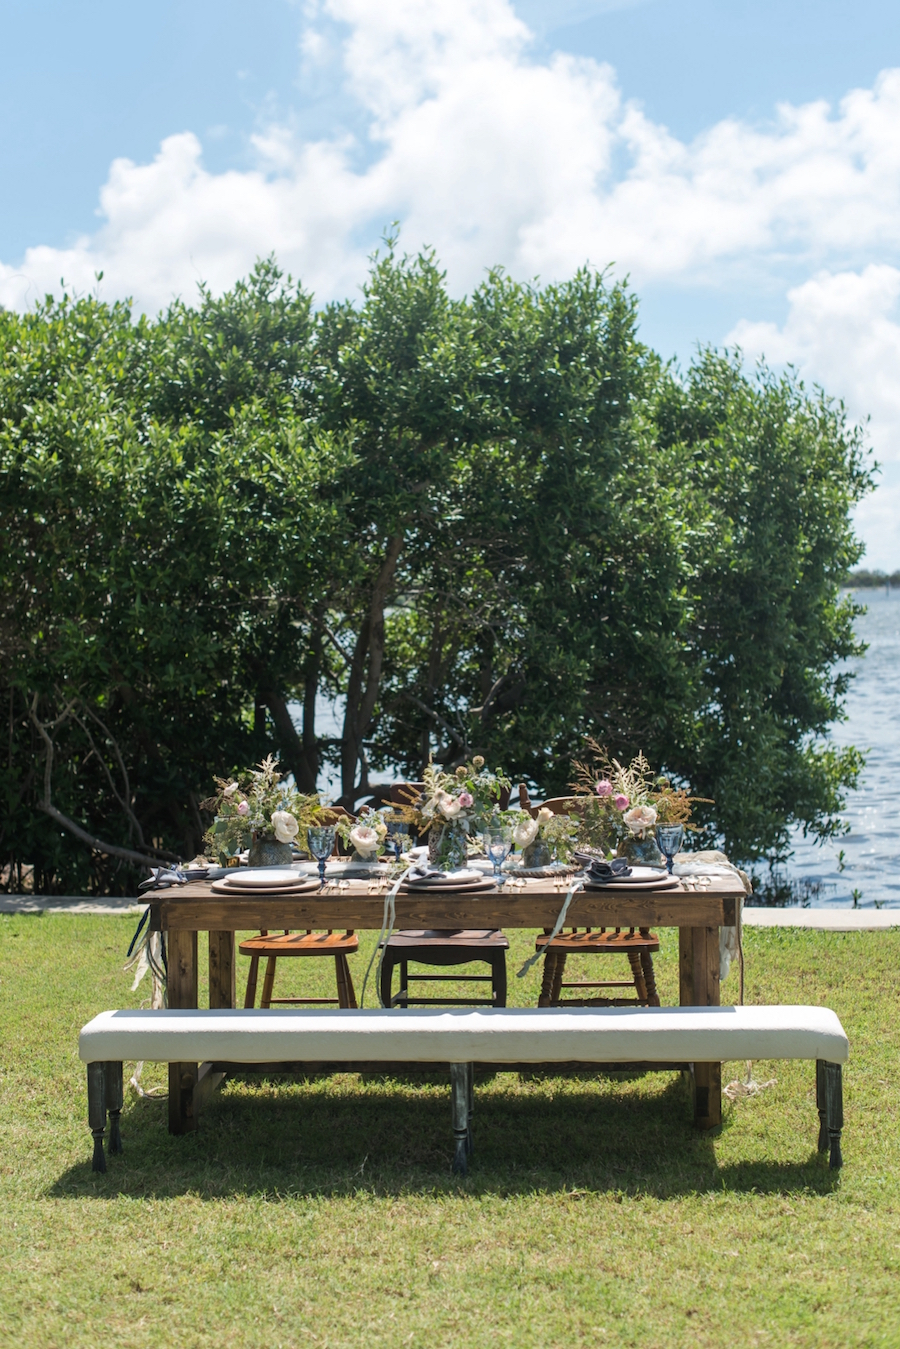 Outdoor Wedding Furniture Wooden Benches and Table| St. Pete Beach Wedding Photographer, Caroline & Evan Photography